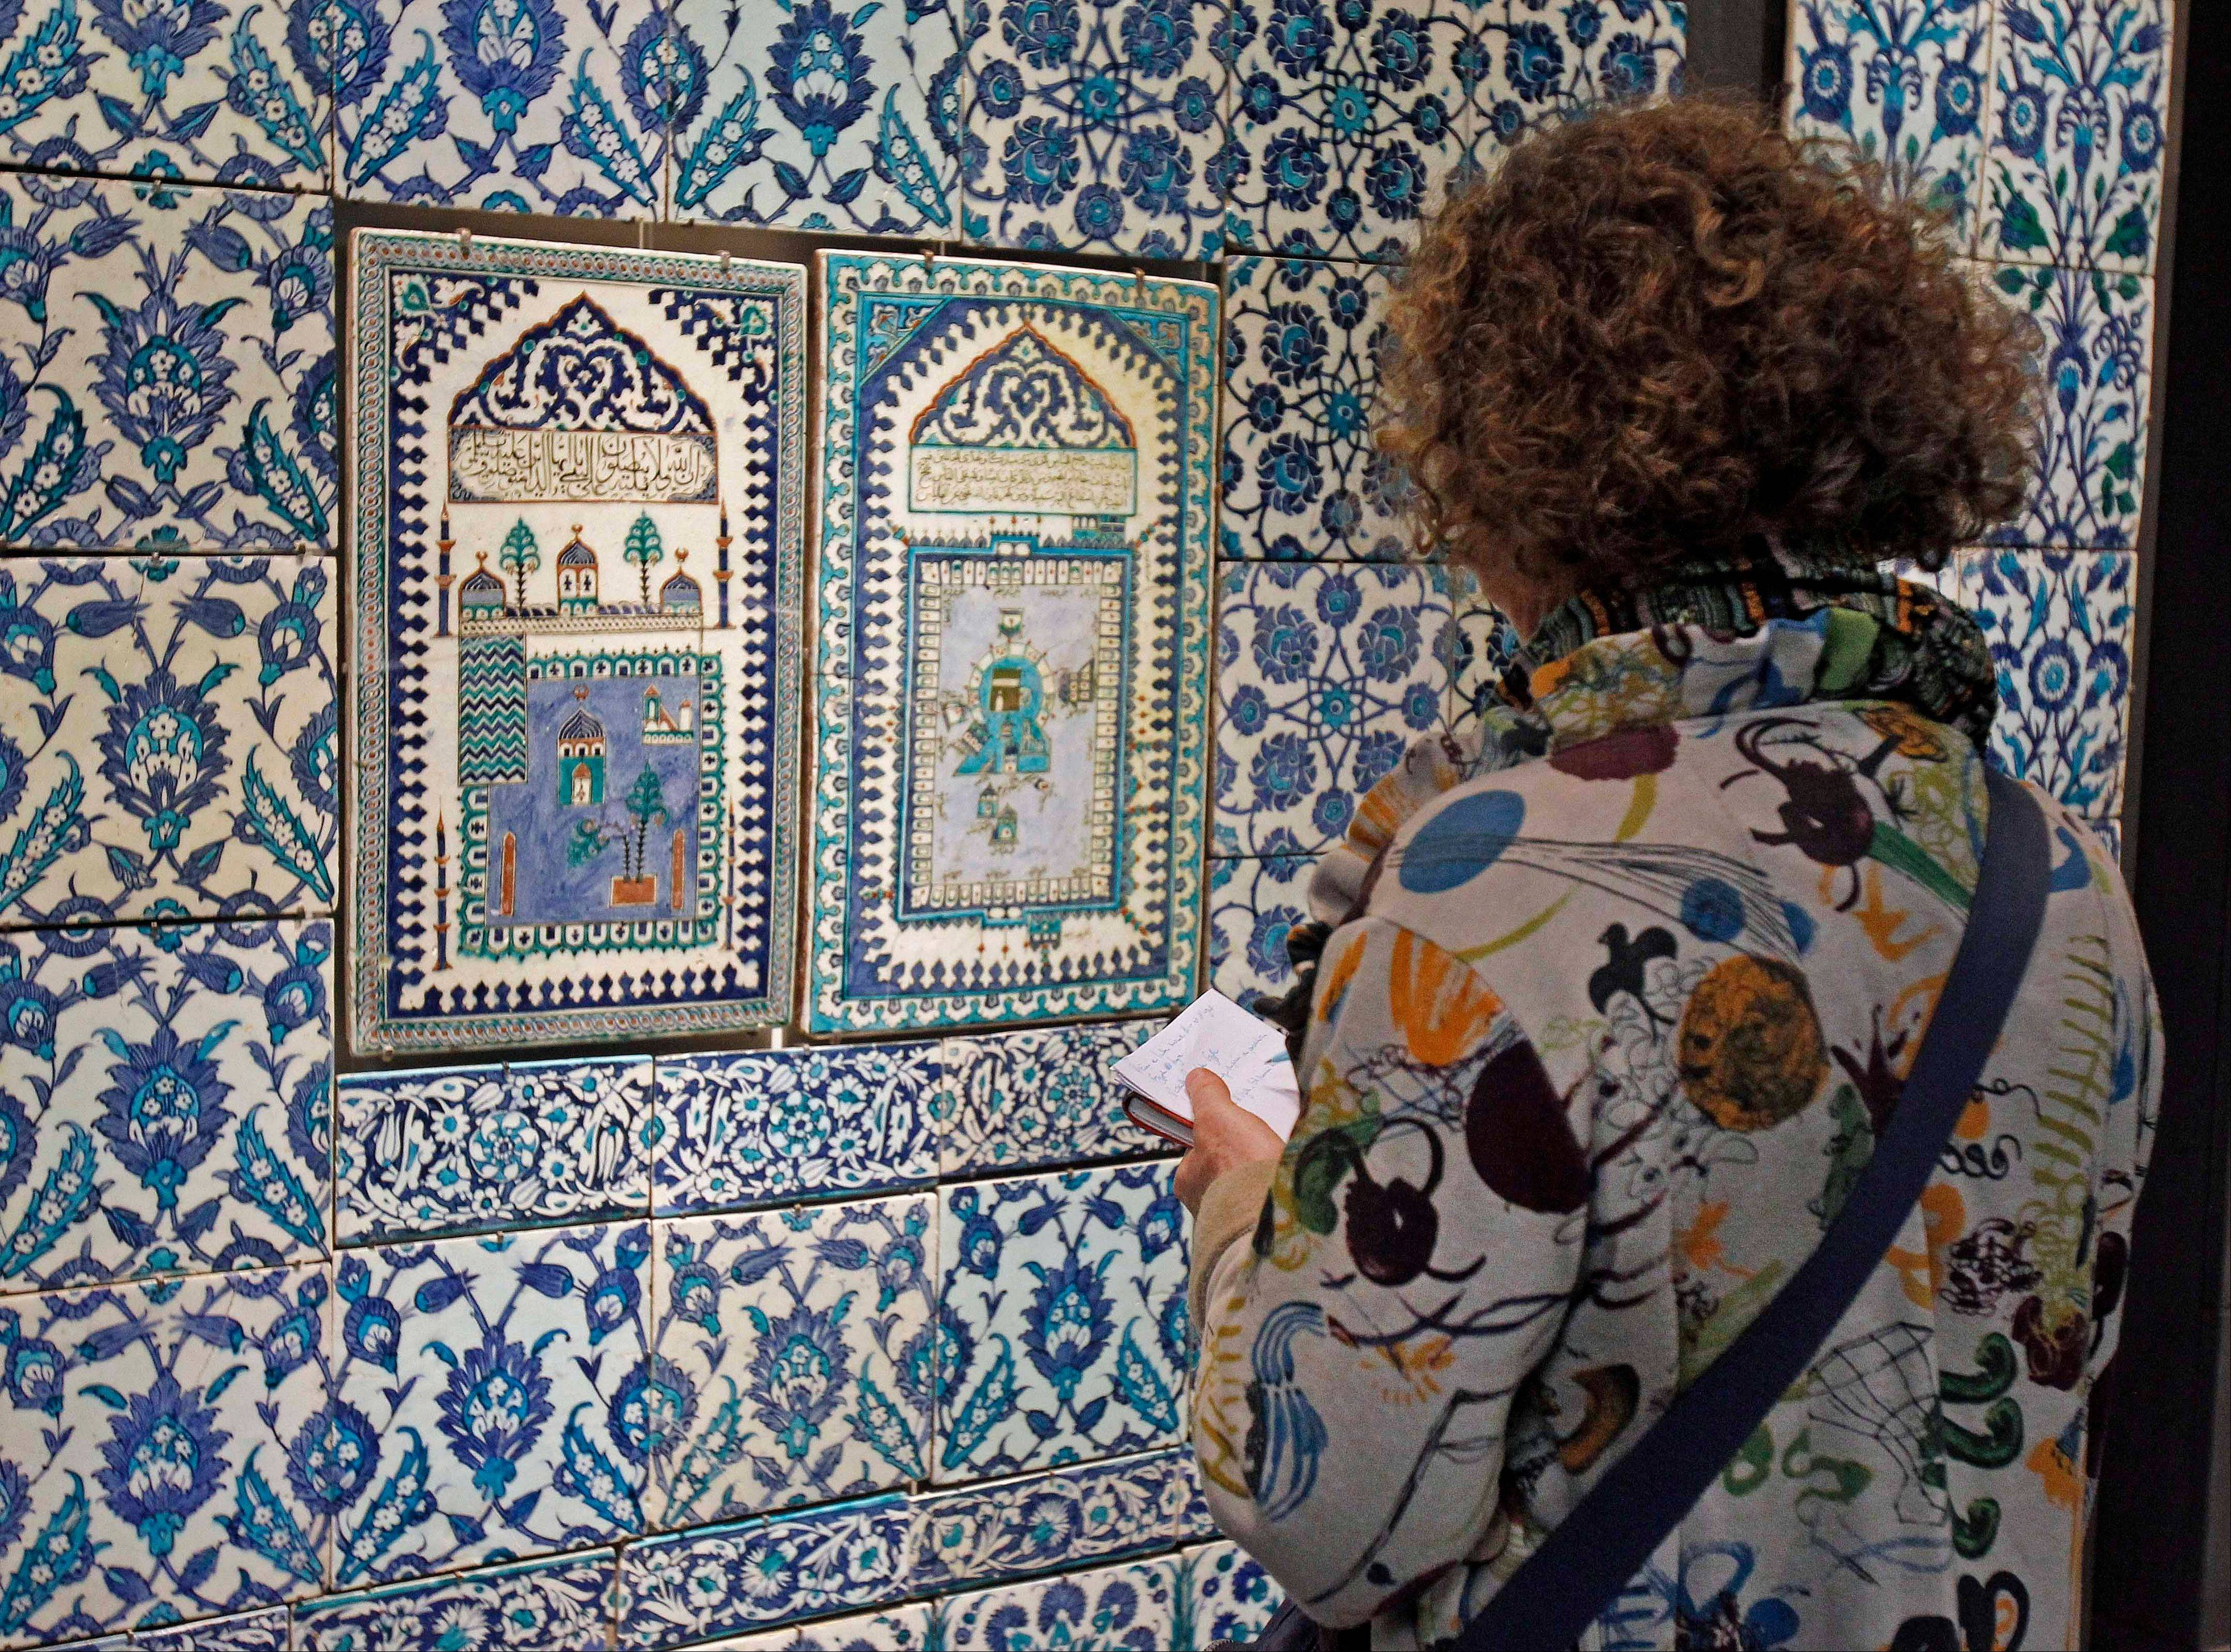 A member of the media examines a ceramic tile wall displayed at the Louvre museum in Paris. The Louvre museum is unveiling its new wing and galleries dedicated to the arts of Islam, and new dragonfly shaped building marking the museum�s greatest development since the iconic glass pyramid constructed 20 years ago.